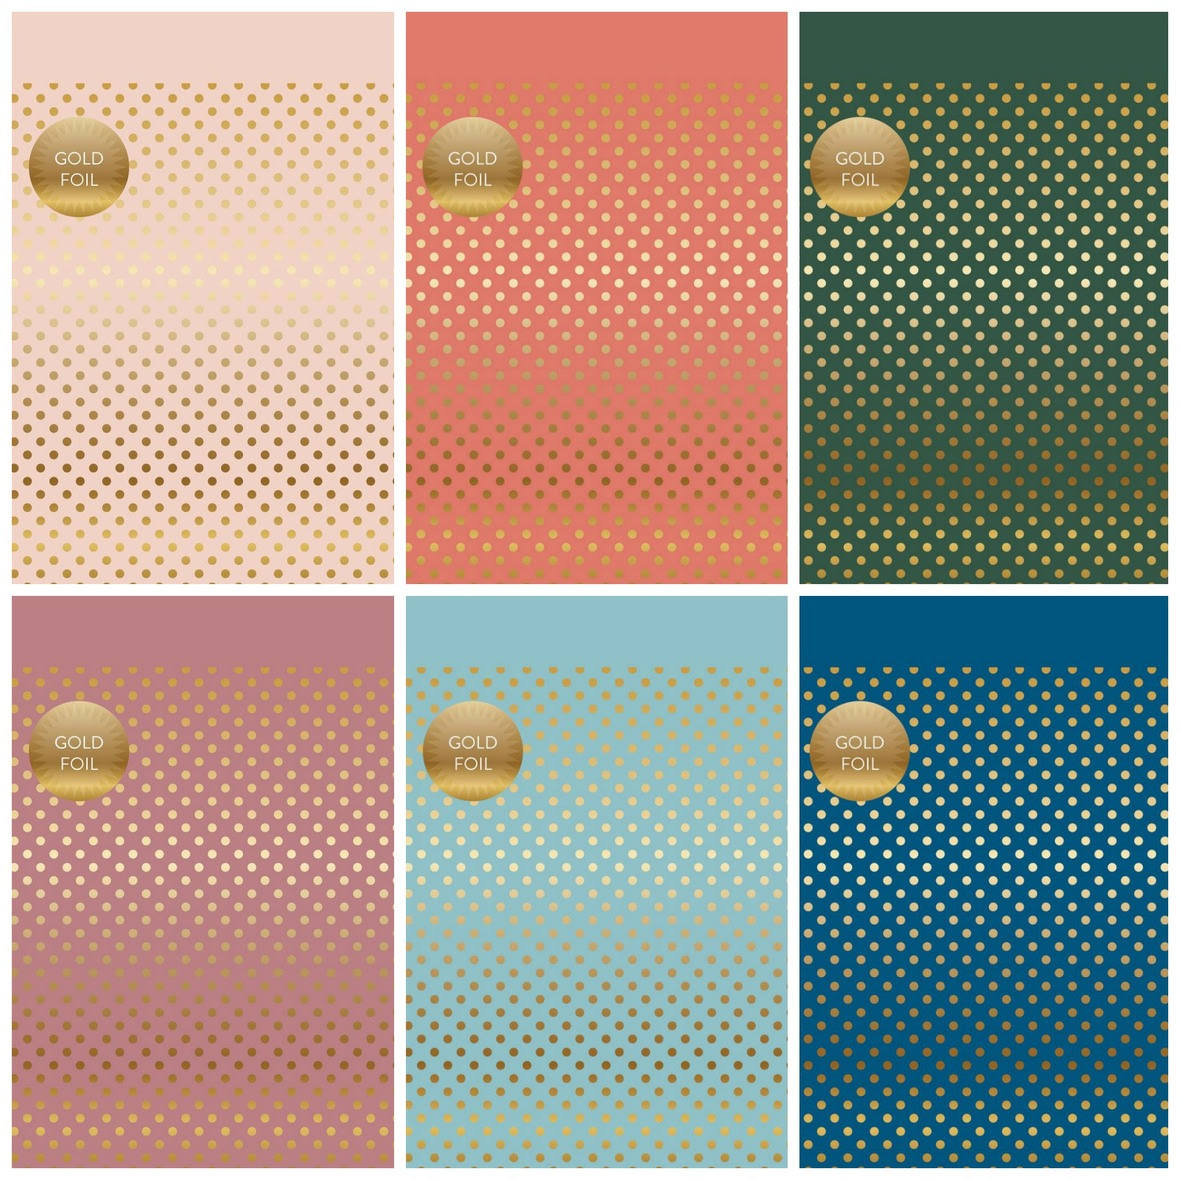 PicMonkey Collage dots